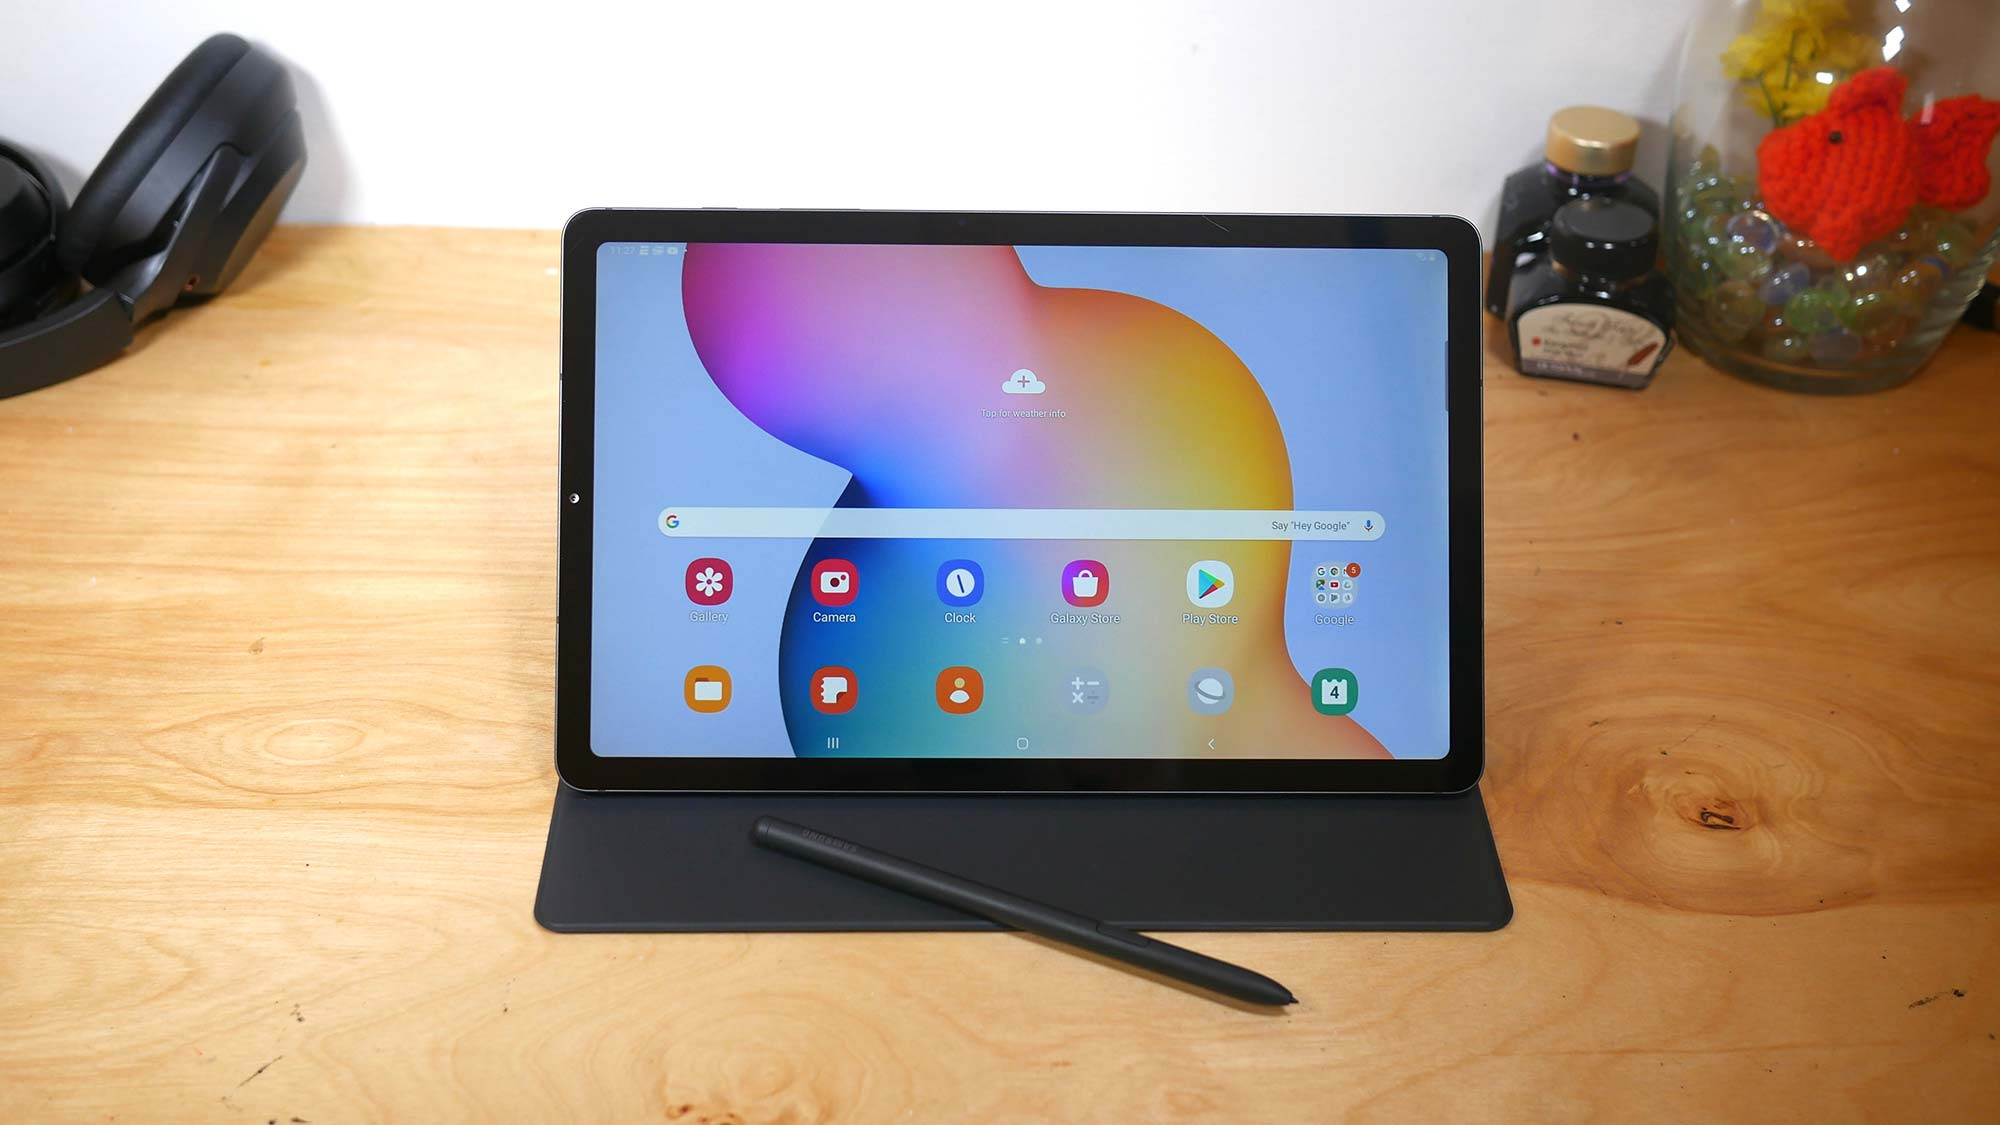 Best Android Tablets of 2021 – Find the Best Budget-Friendly Tablets